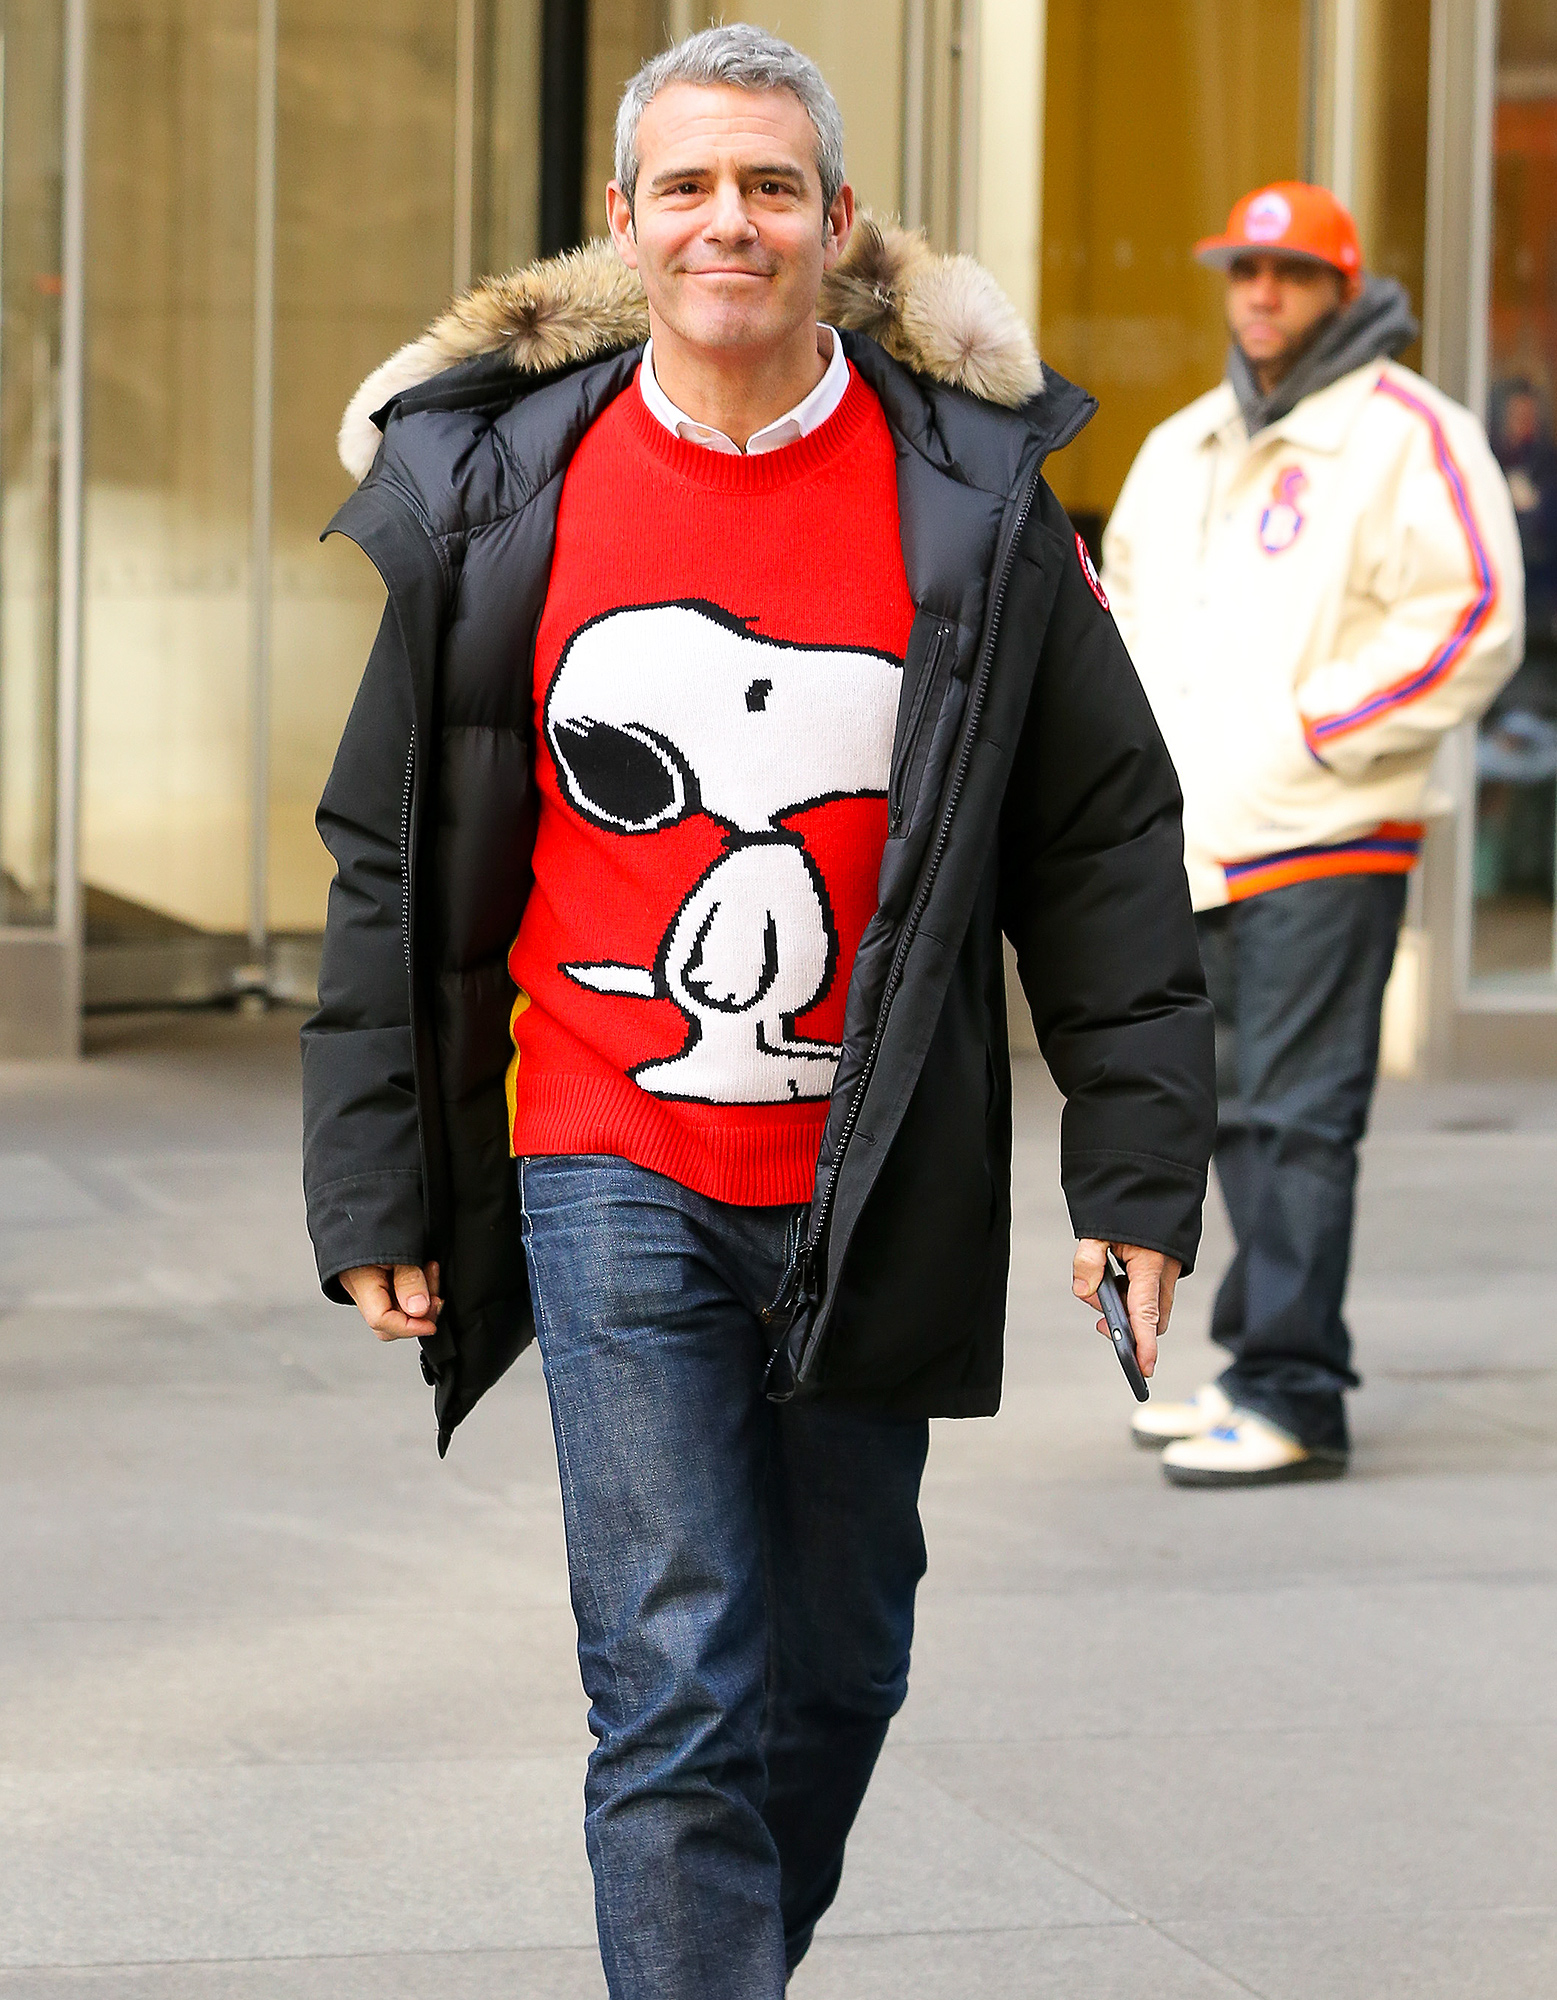 """Andy Cohen is all happy while wearing his red """"Snoopy"""" sweater in New York City"""